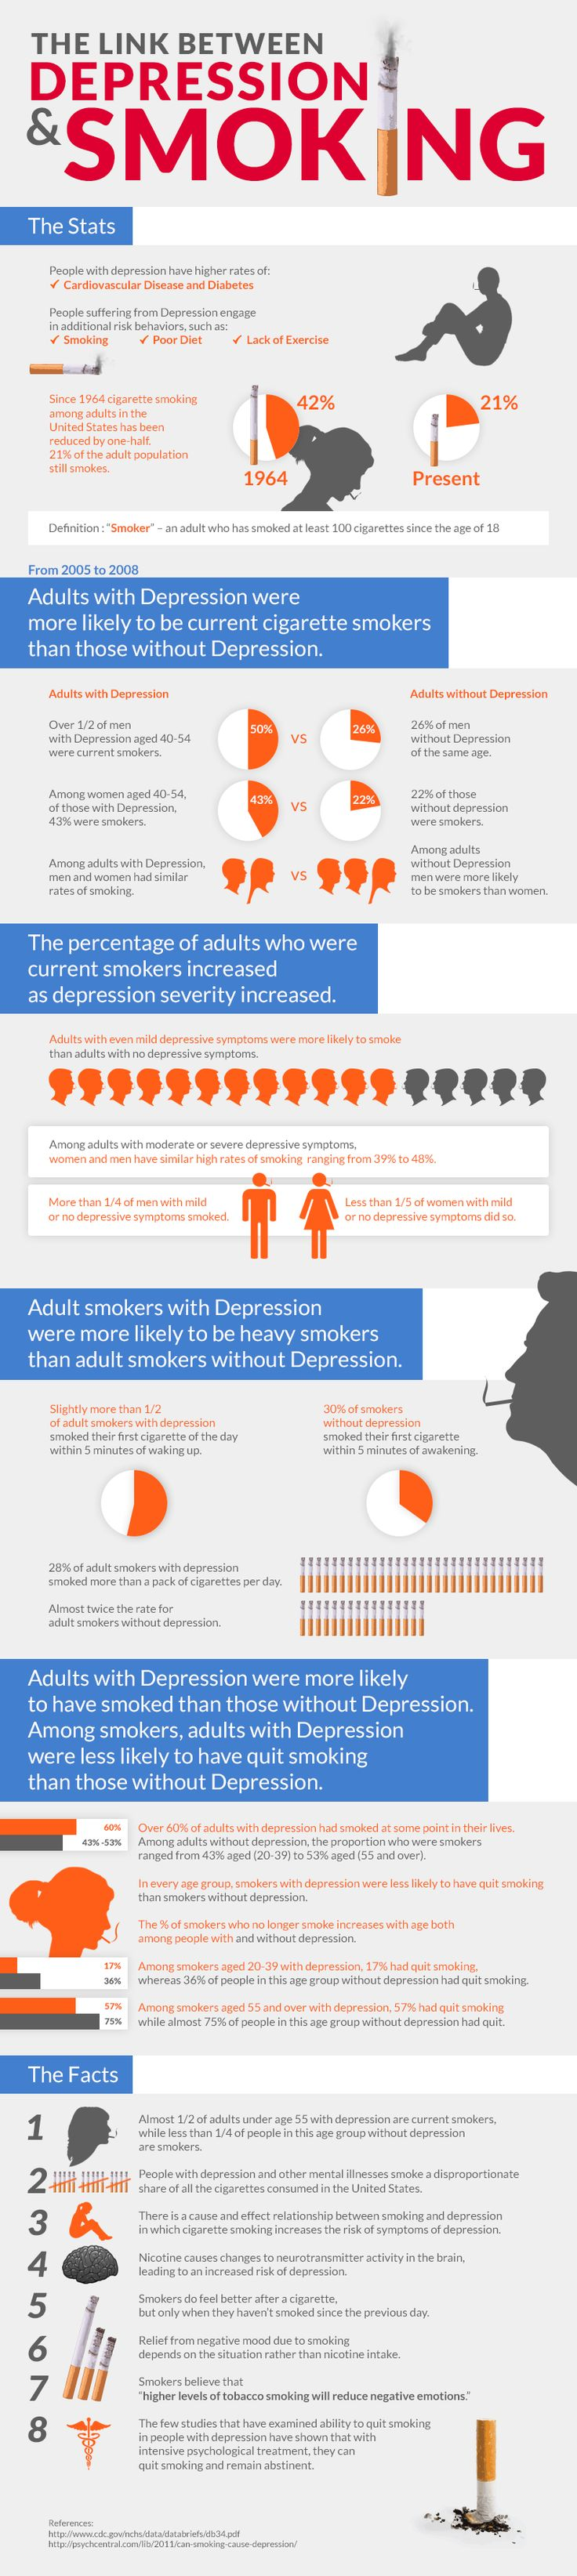 Link Between Smoking and Depression - Psychological Treatment Center